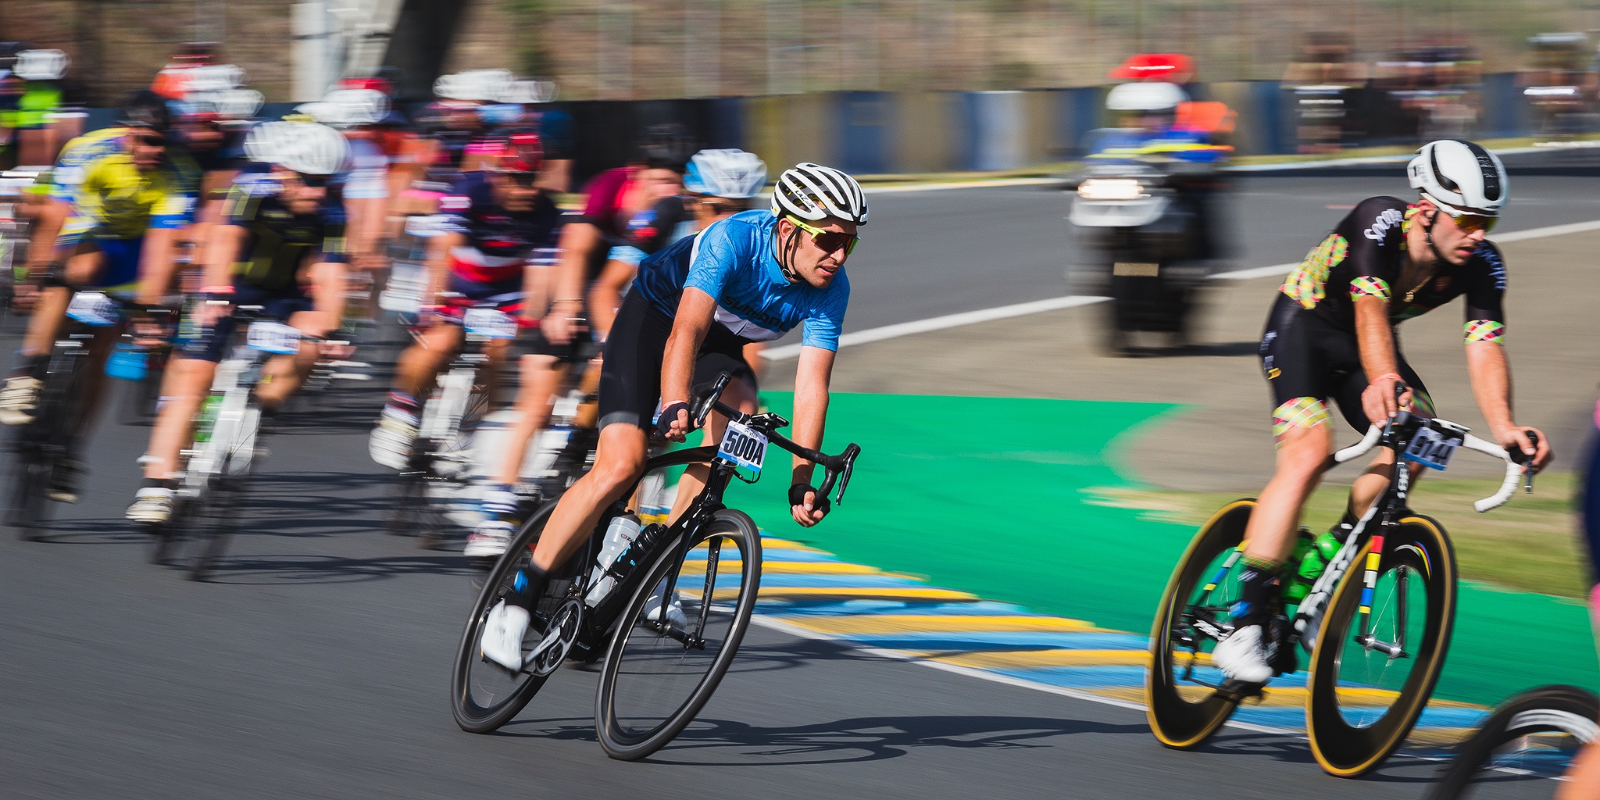 SHIMANO 24 HOURS CYCLING: NEXT EDITION ON 21 AND 22 AUGUST 2021